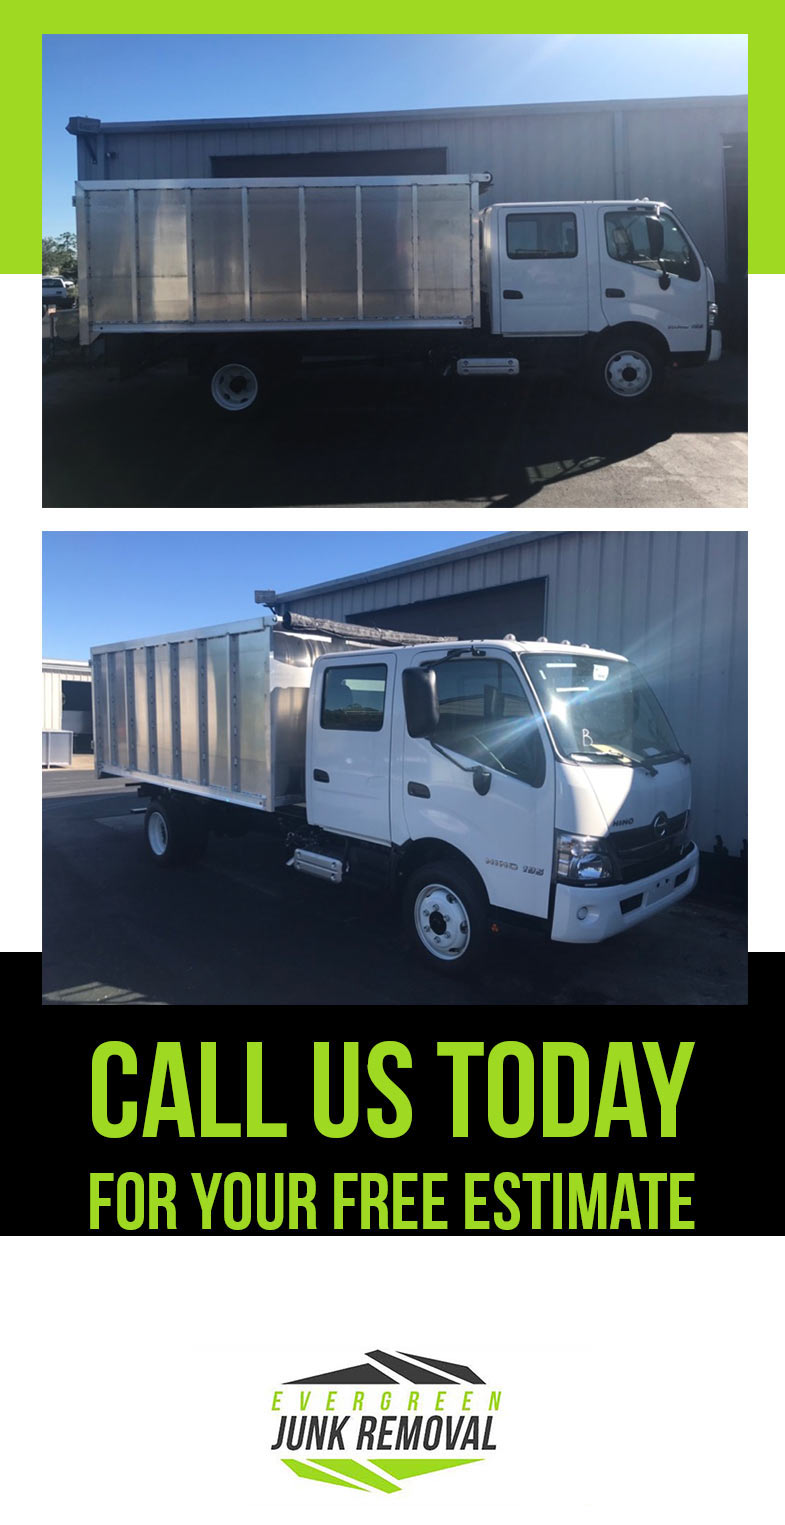 Junk-Removal-New-Port-Richey